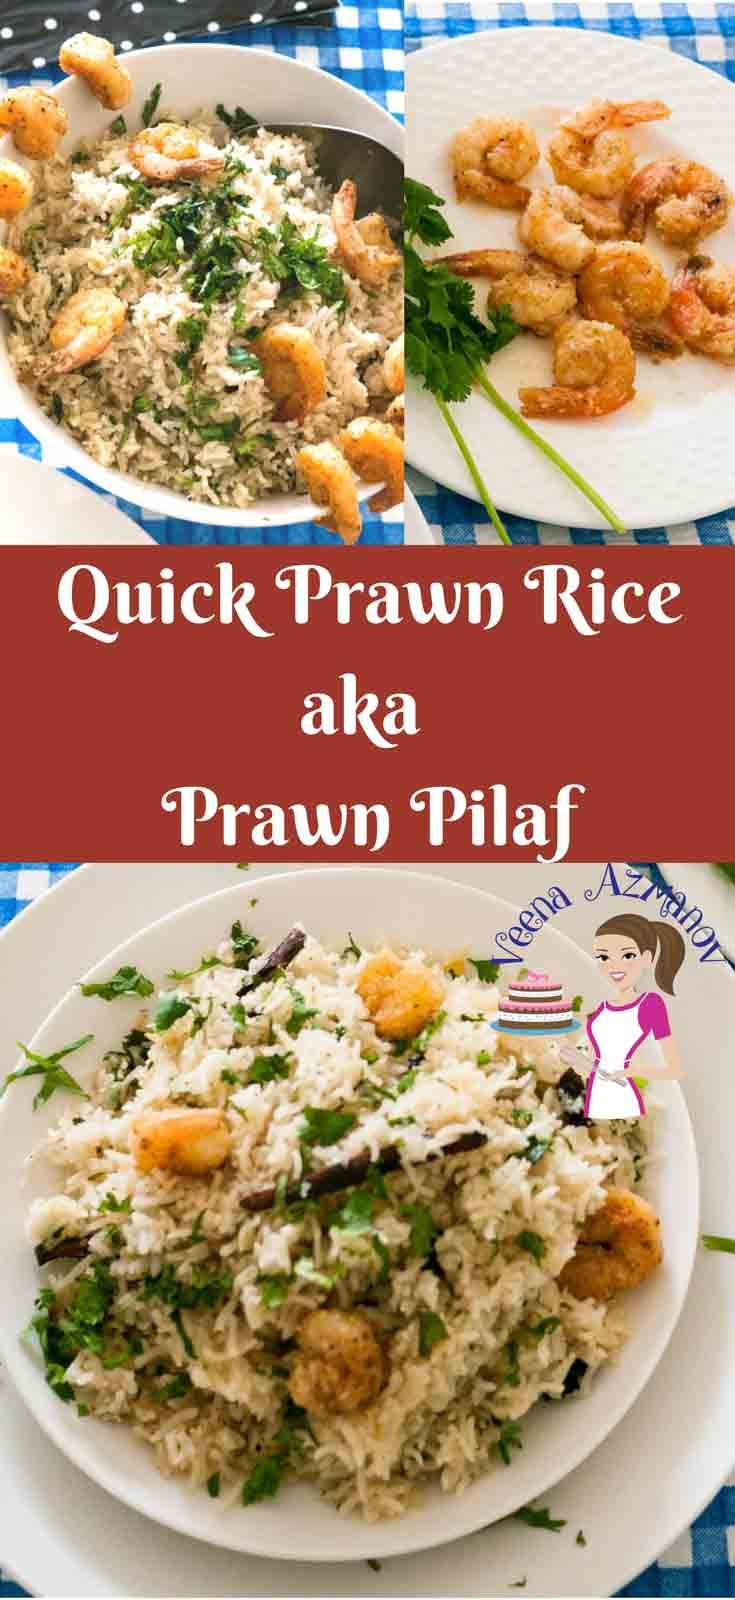 One of my time saving and fun meal is this quick prawn rice, it's the quickest meal you can make for your family in 20 minutes. A delicious Indian Prawn Pilau recipe is a perfect one pot meal and a blessing to busy and working moms like me. Prawn Pulao, Prawn Pilaf, Prawn Rice Recipe, Fragrant Rice recipe with prawns, prawn rice, One pot rice recipe